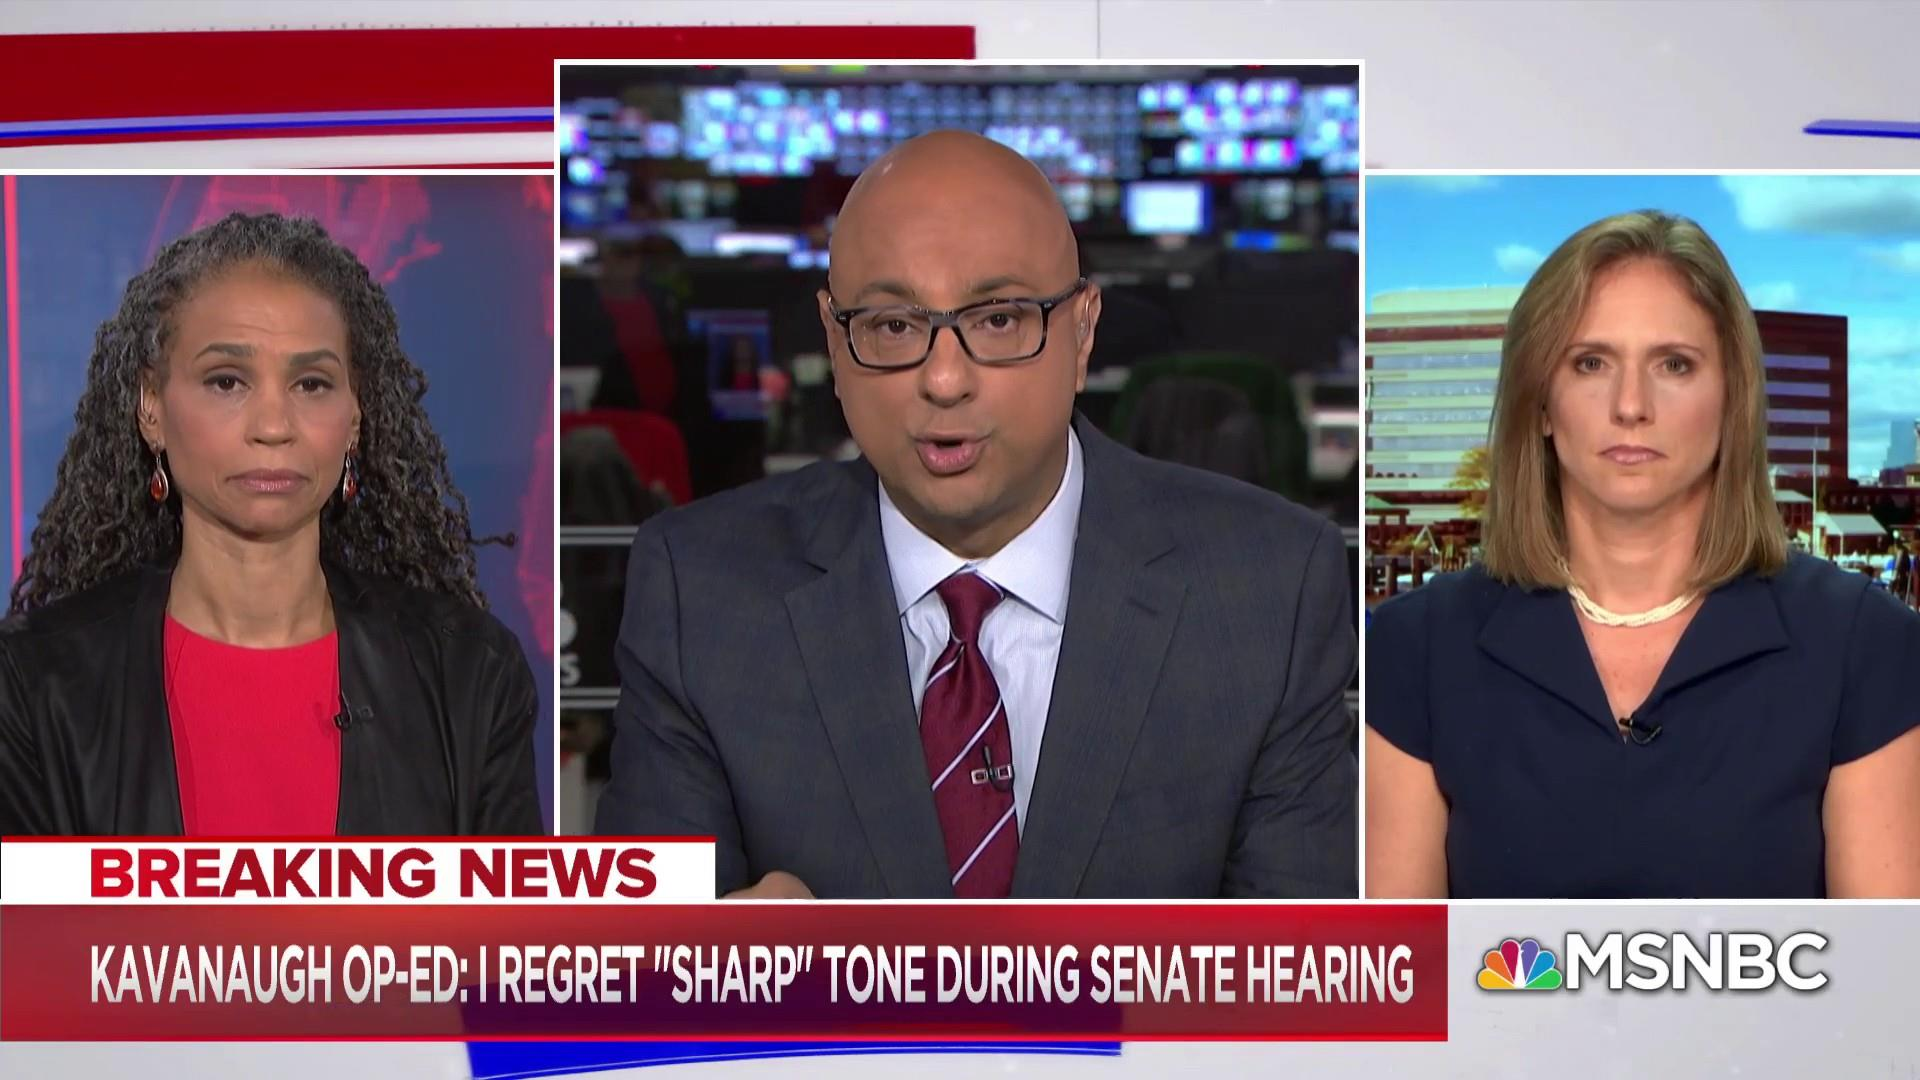 Democrats argue Kavanaugh's angry remarks make him ineligible